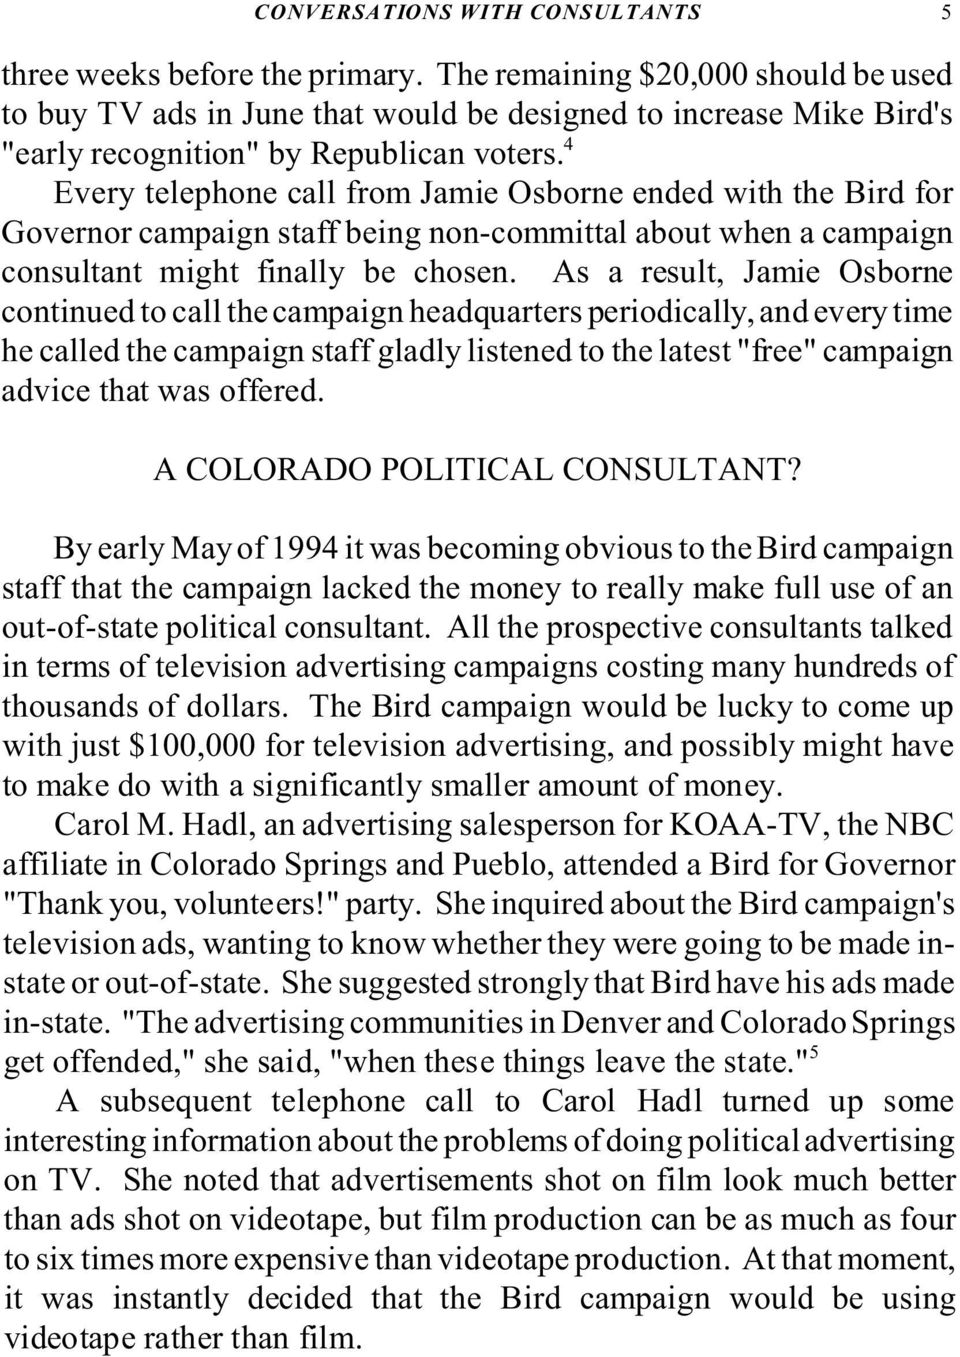 4 Every telephone call from Jamie Osborne ended with the Bird for Governor campaign staff being non-committal about when a campaign consultant might finally be chosen.